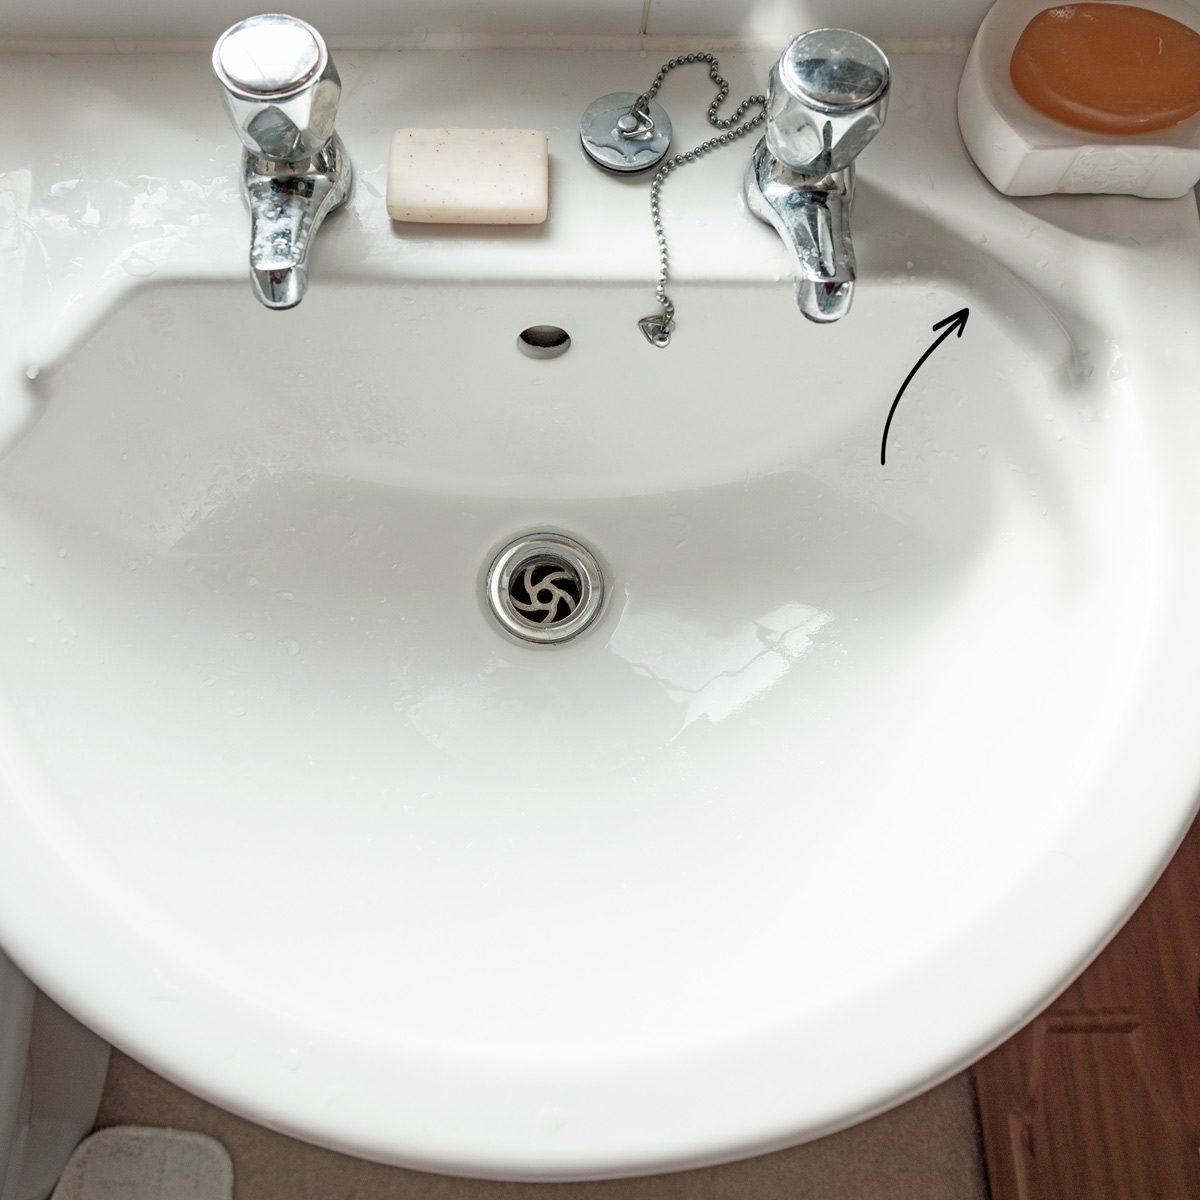 Little Hole In Sink Explained Family